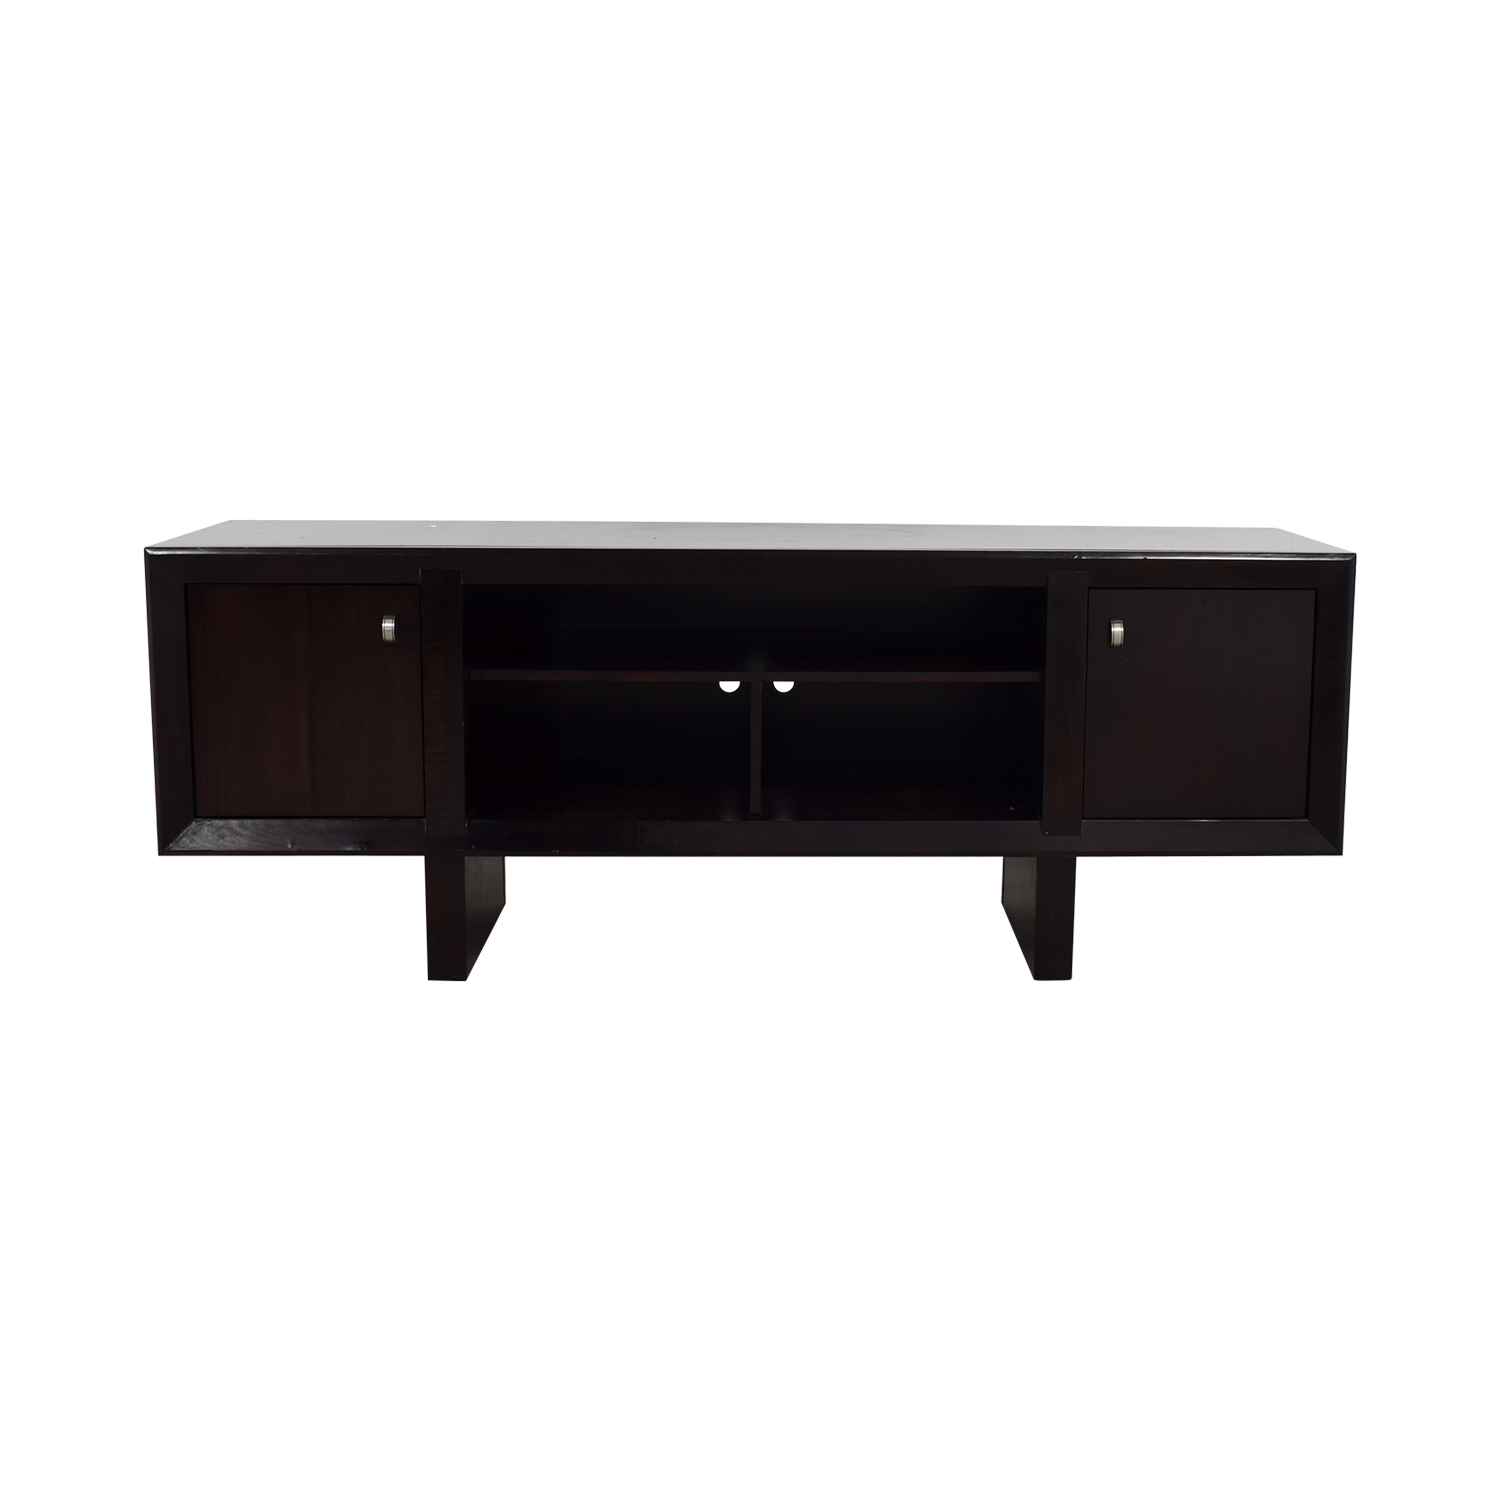 Raymour & Flanigan Raymour & Flanigan Brown Entertainment Console discount